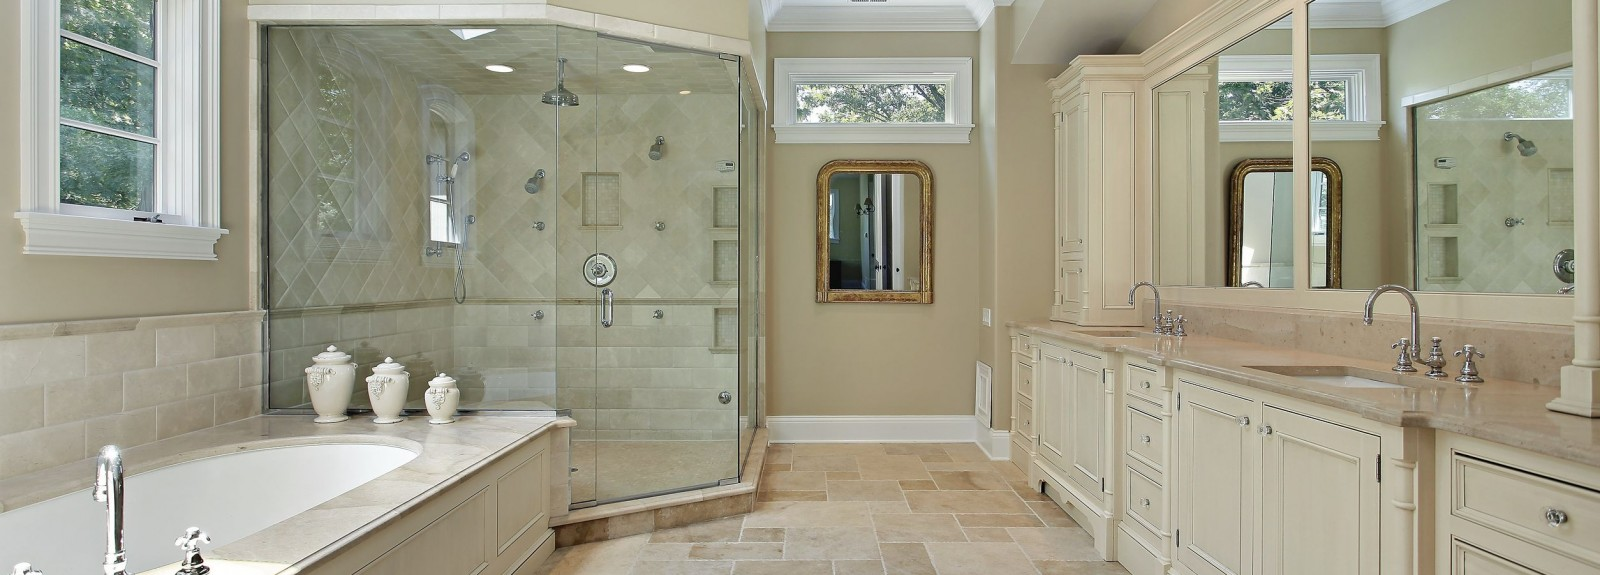 kitchen pretty inspiring remodel works diego in ca like bath surprising on spa bathroom remodeling san beautiful tiny